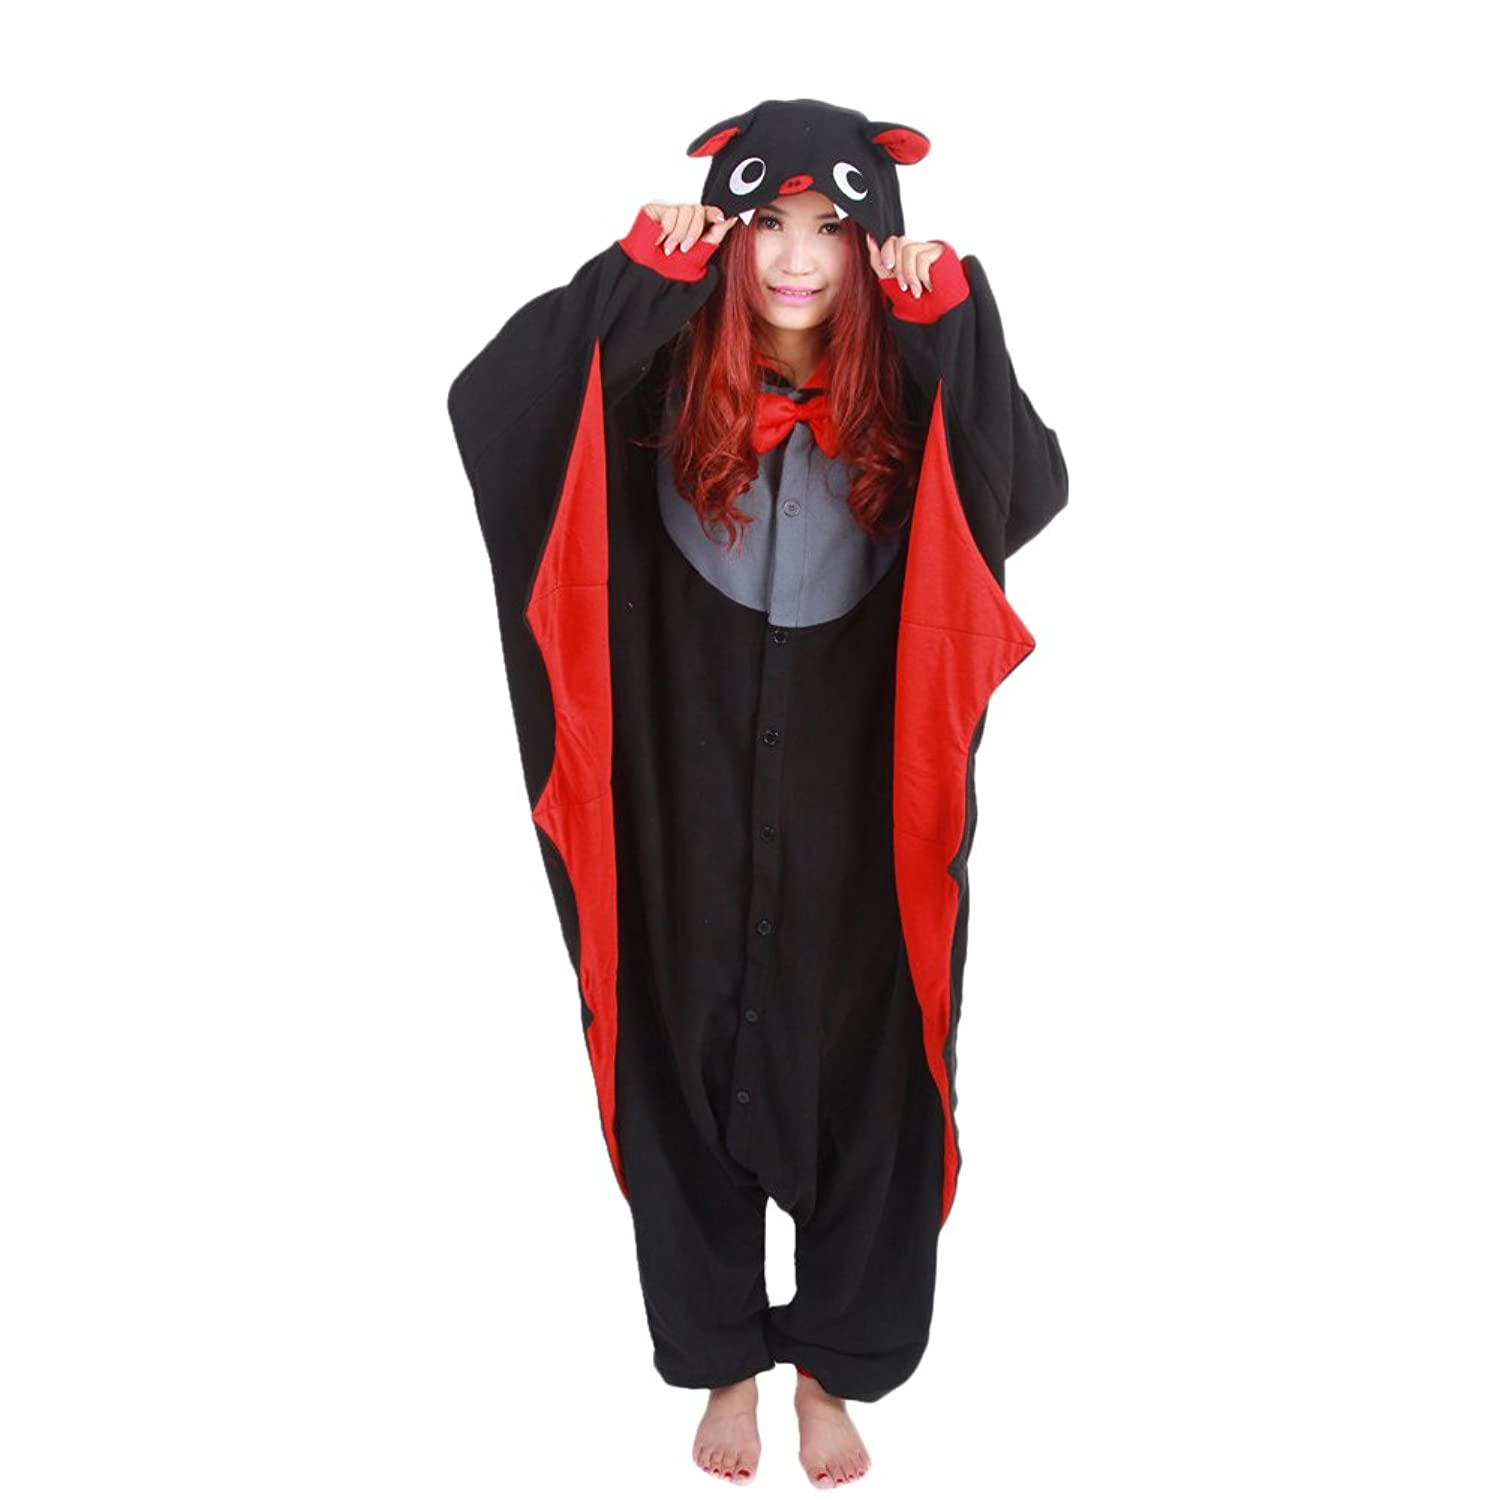 Amazon.com: dgheere Costume Onesie Sleepwear Pajamas Cosplay Hoodie for Halloween: Clothing